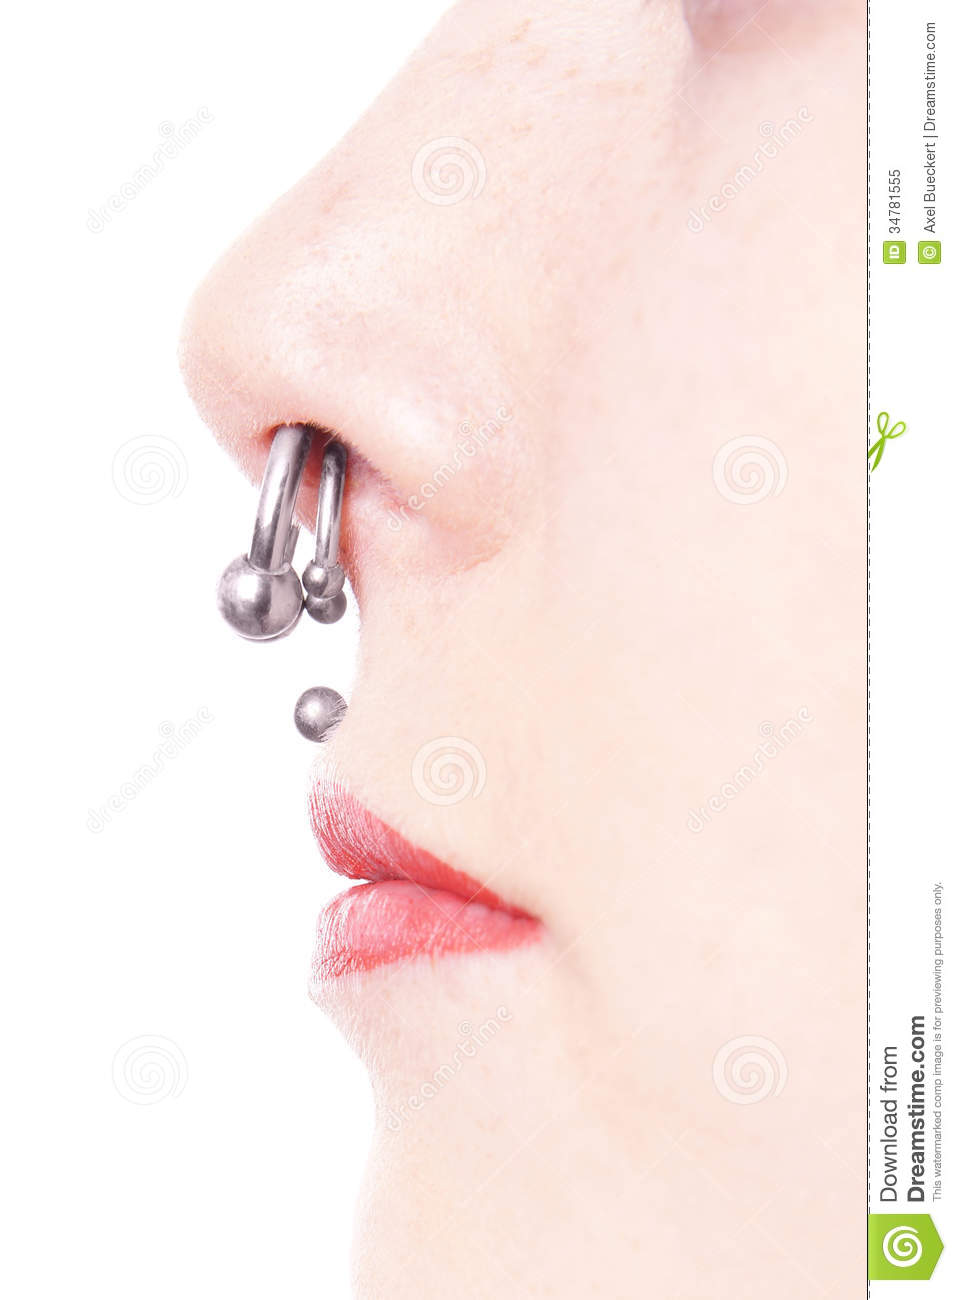 Septum And Medusa Piercings Royalty Free Stock Photo ...